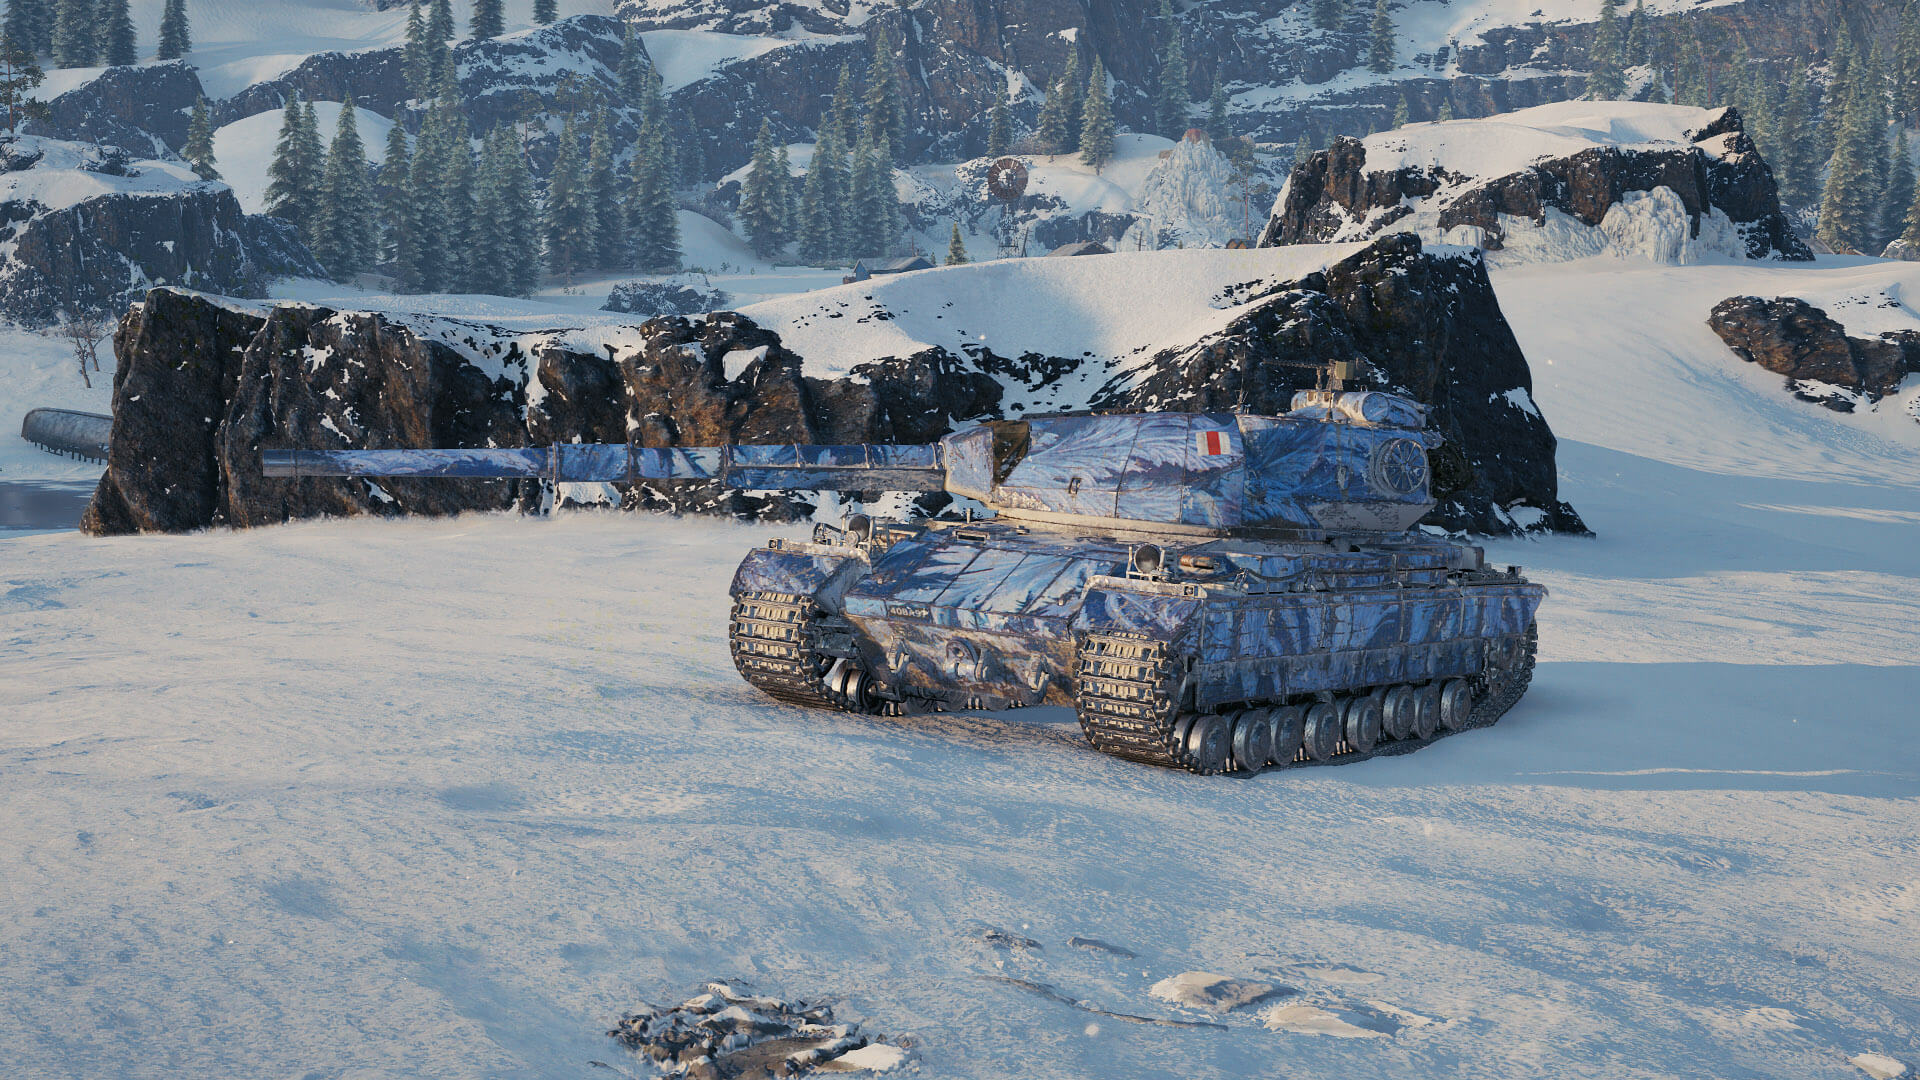 Untitled-1 0030 Worldoftanks H 2018-12-04 12-53-34-75